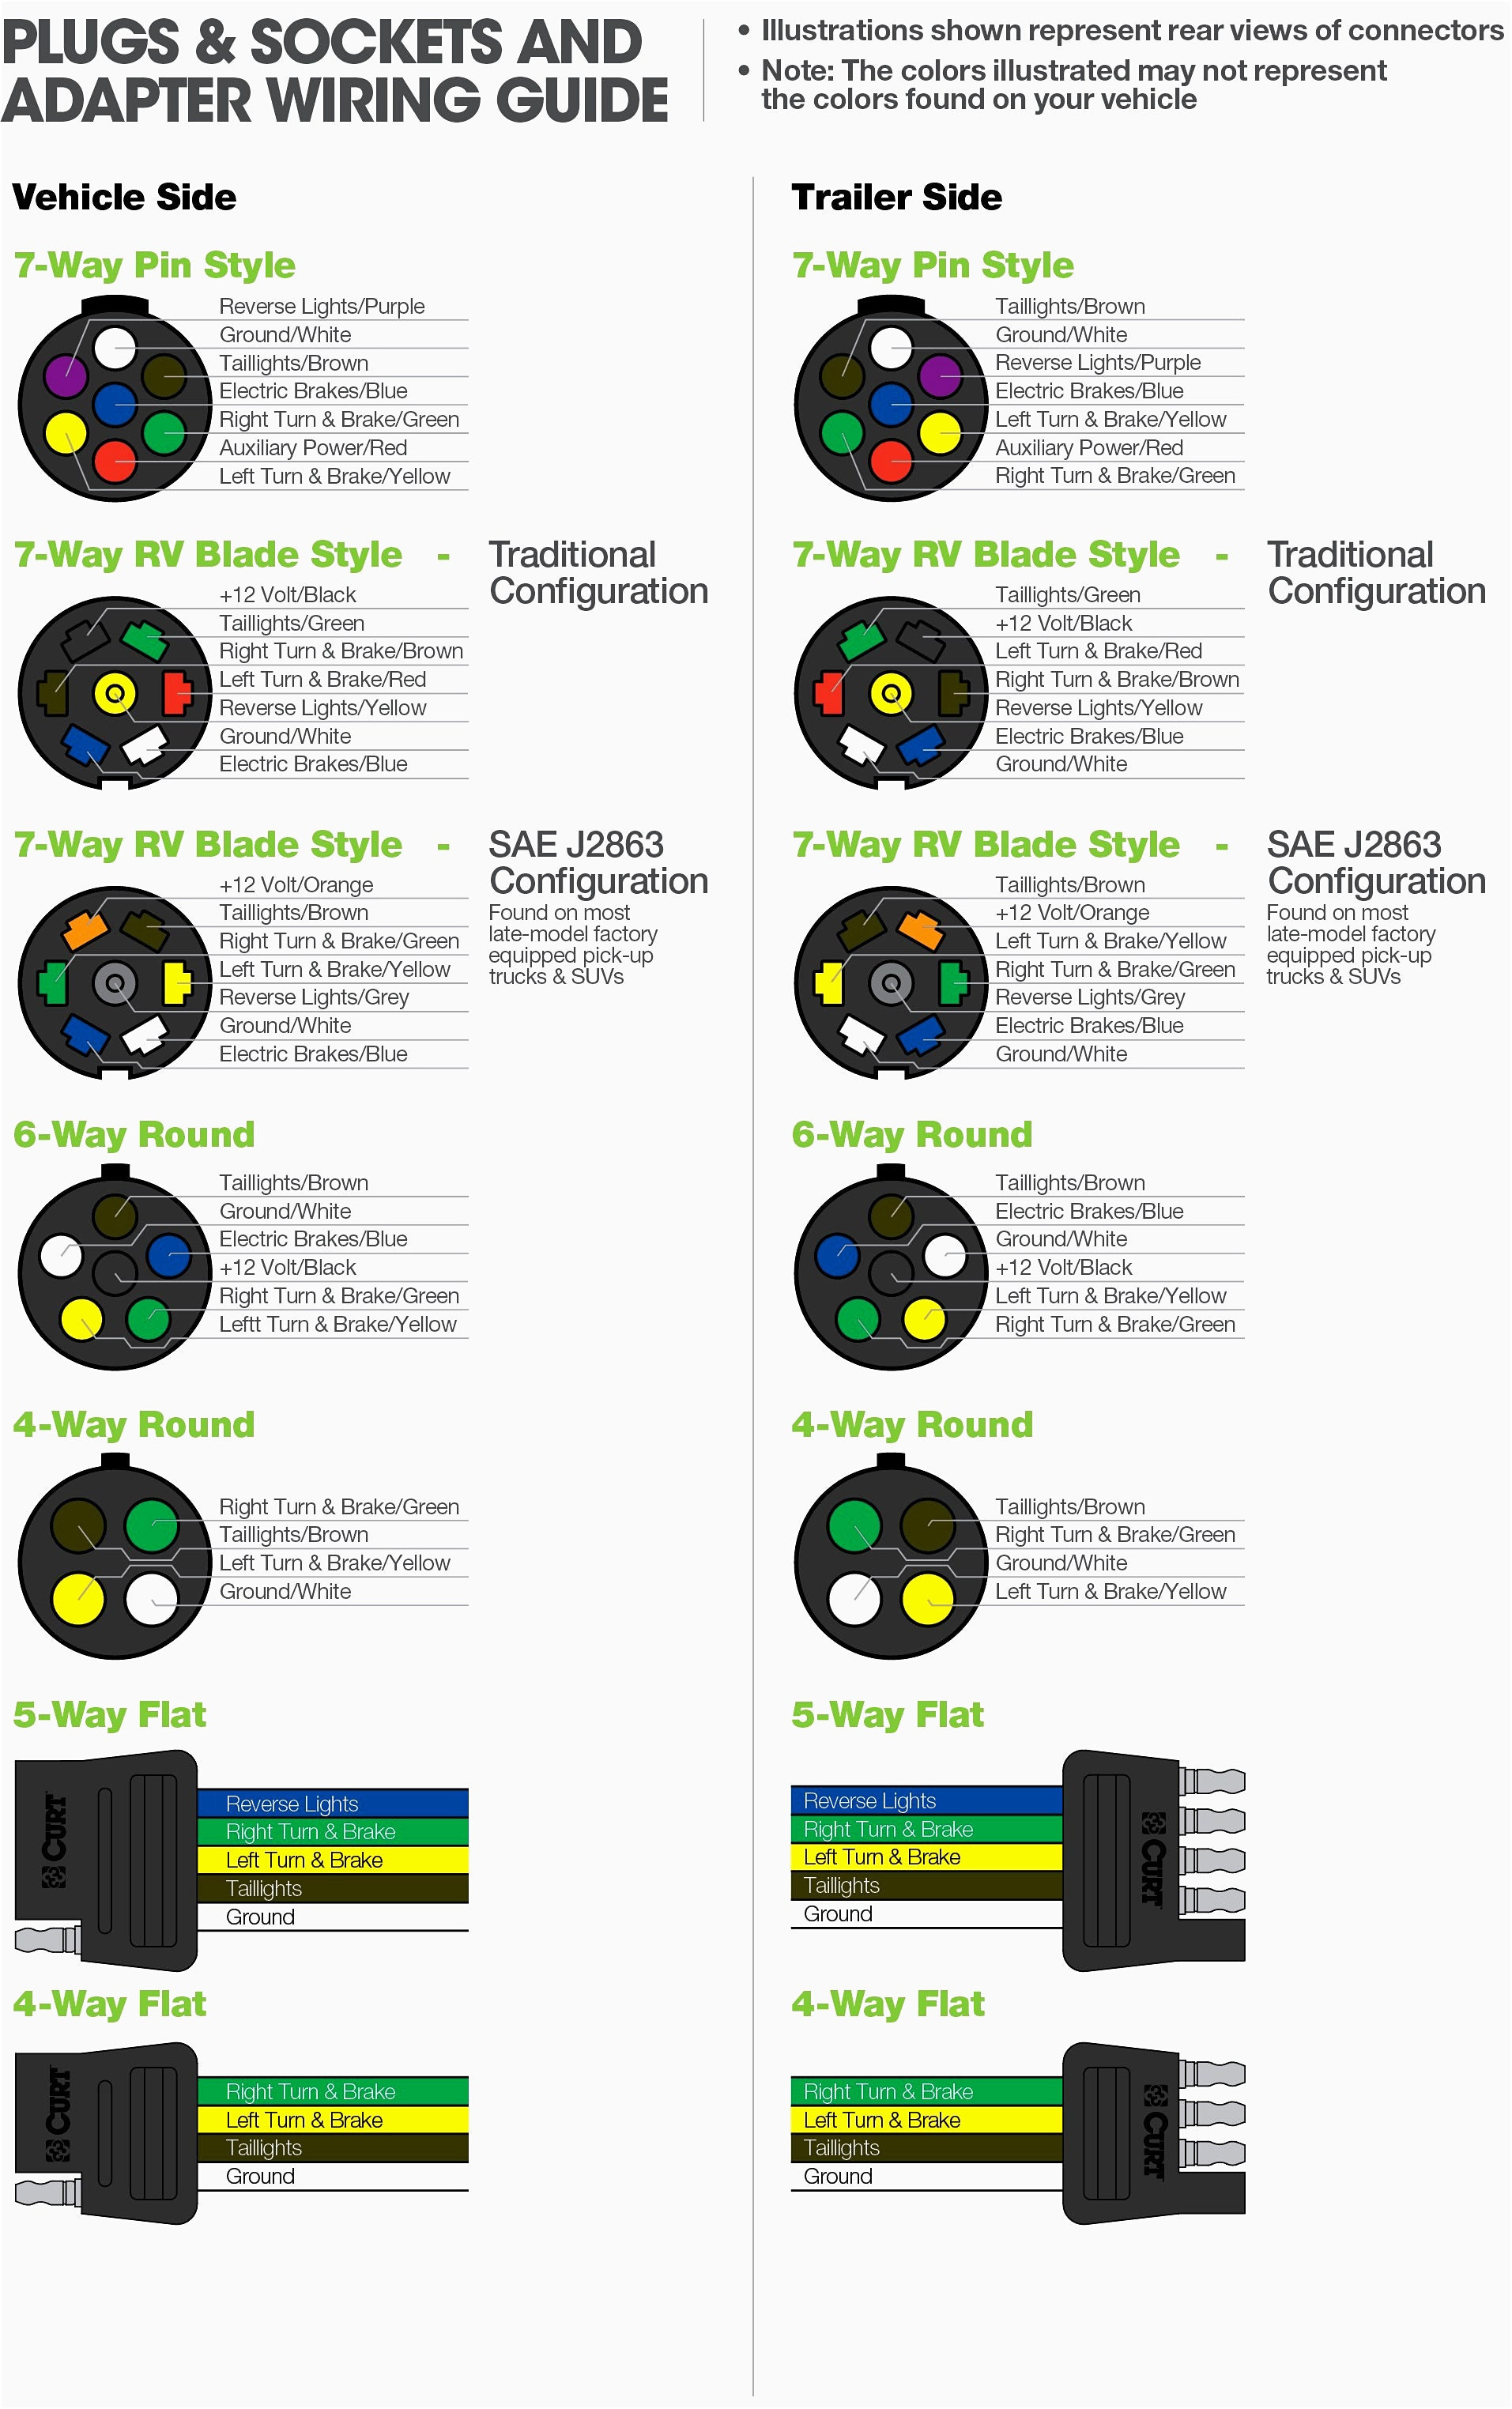 Ford Trailer Wiring Diagram 7 Way Rate 4 Wire To 5 Trailer Wiring - Trailer Wiring Diagram 7 Way Round